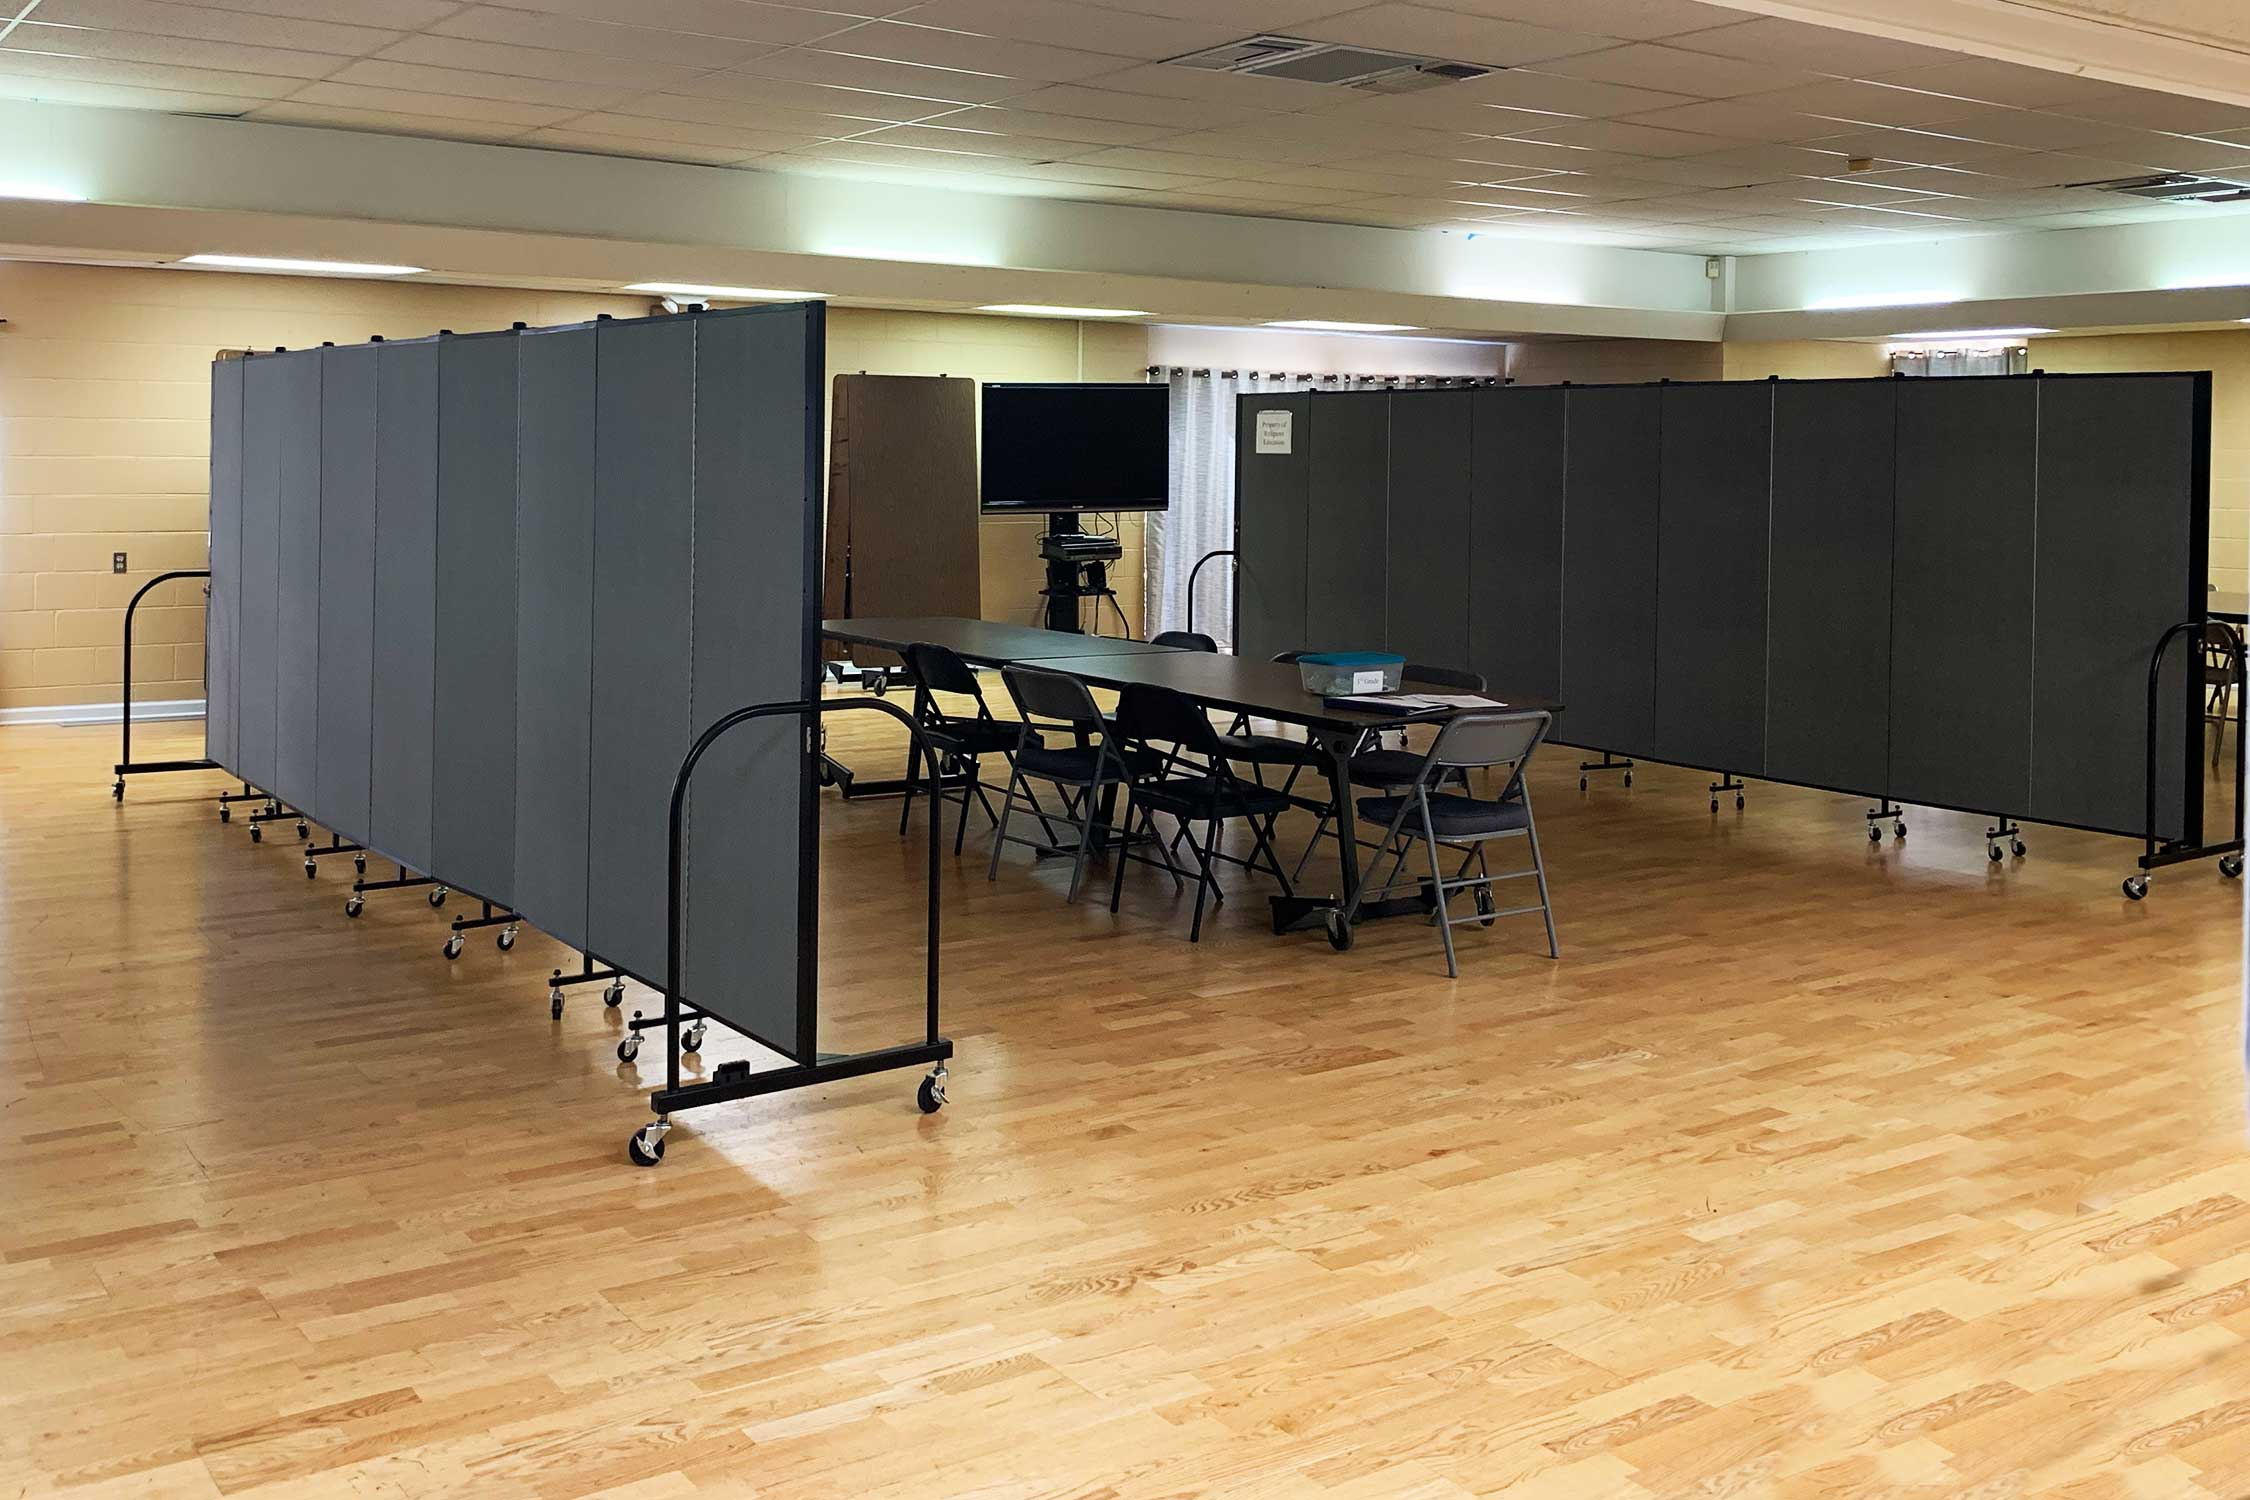 Two room dividers separate a large room into thirds